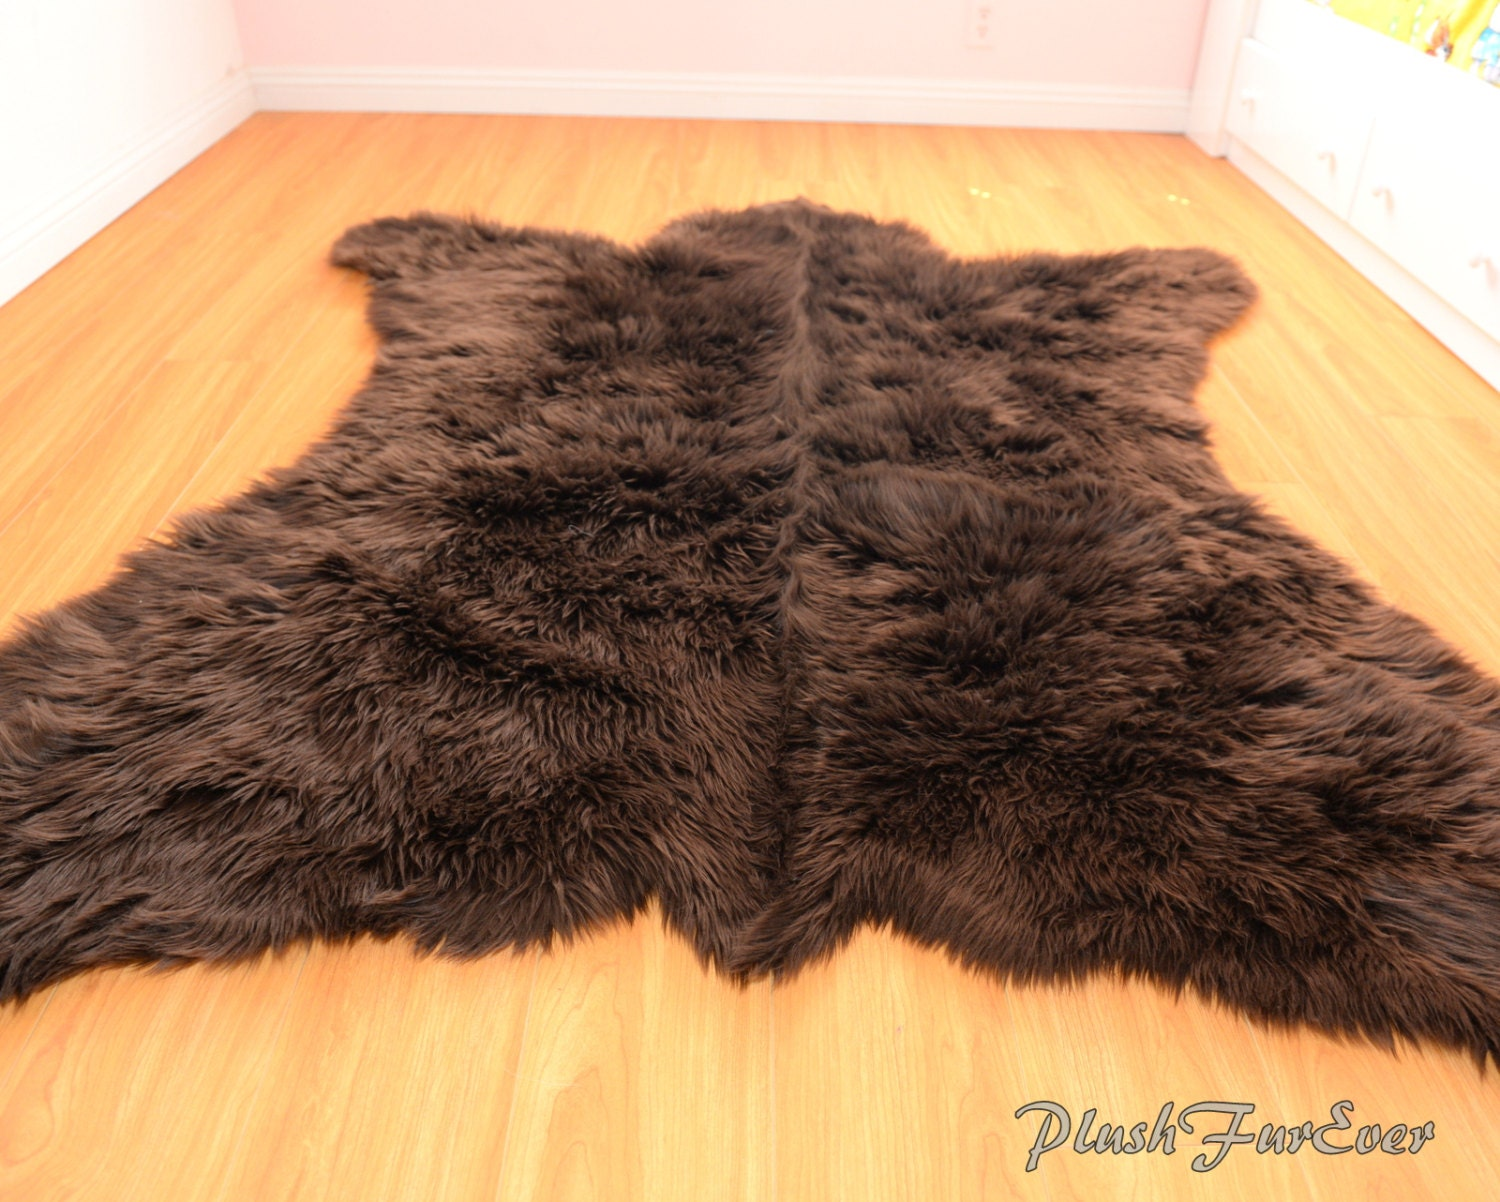 large grizzly area rug white brown black polar bear skin rug